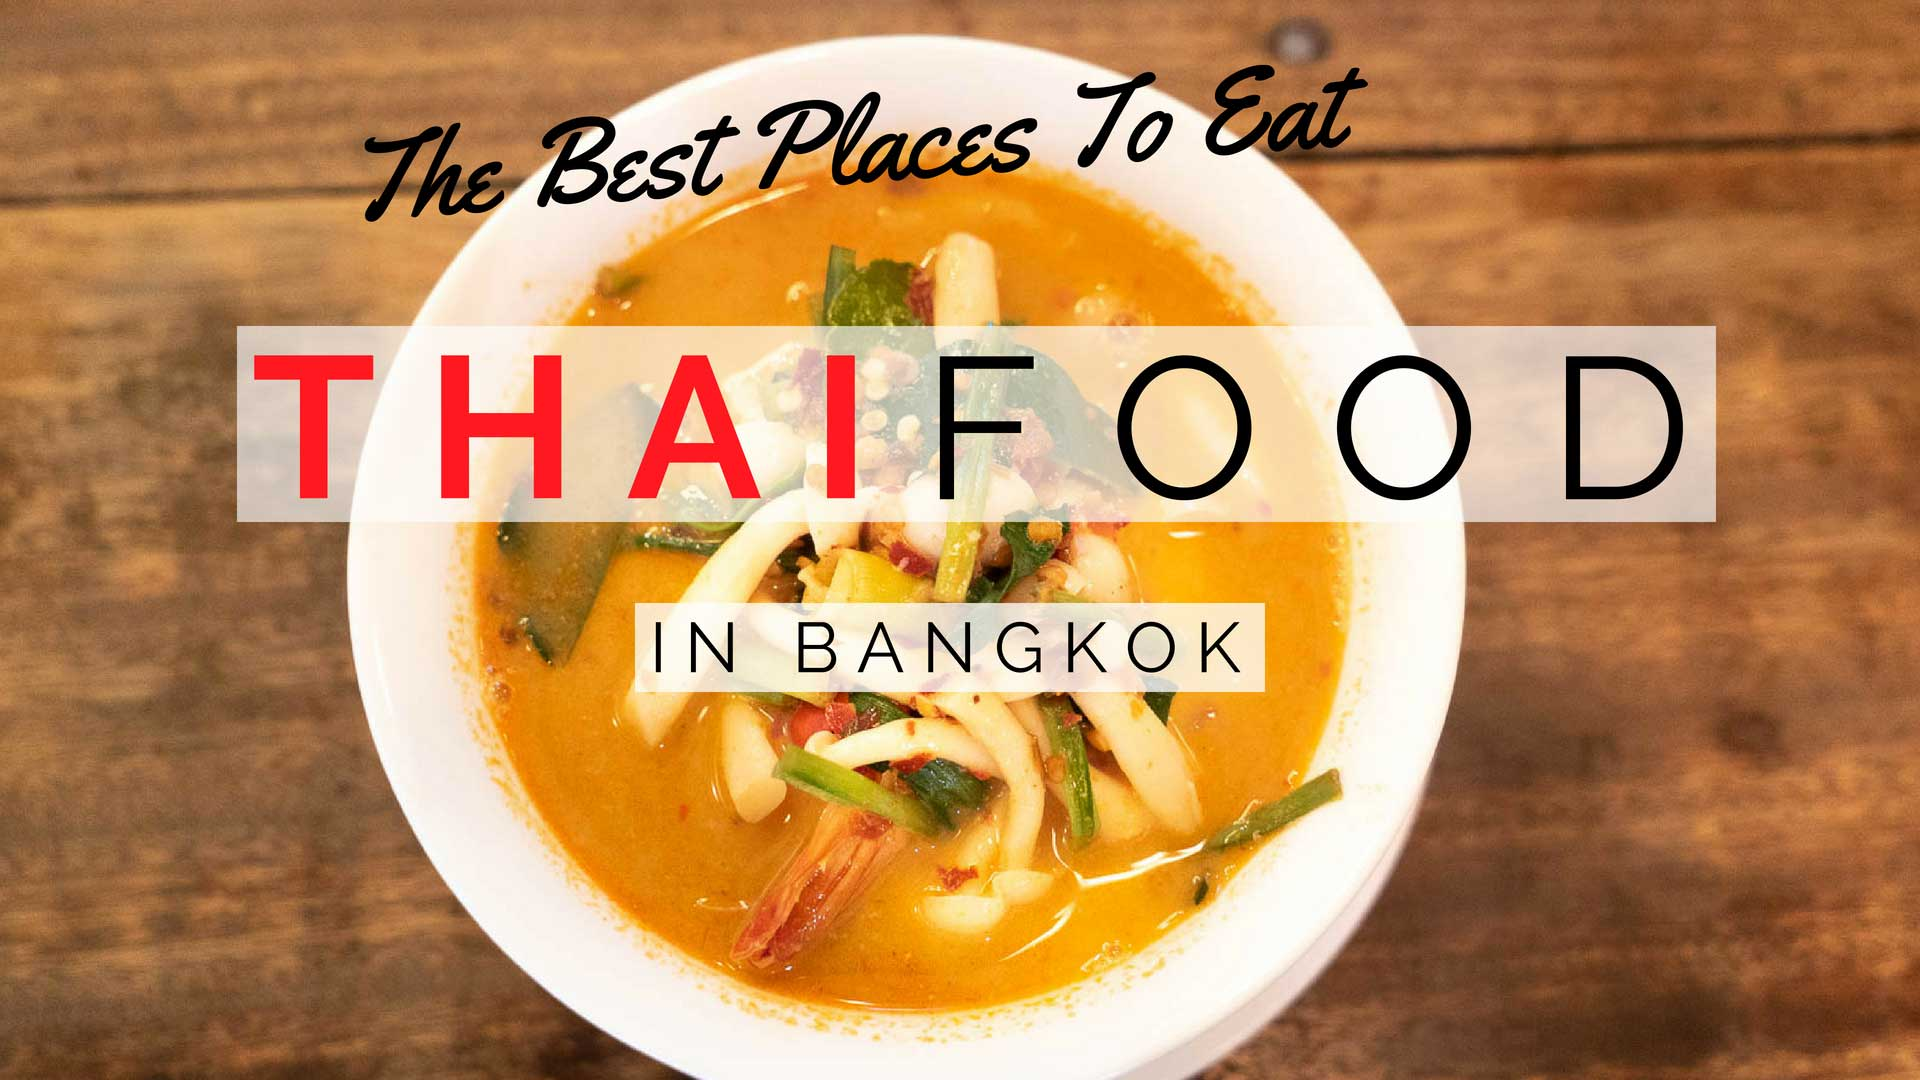 e03a7dbe267 Our 7 Favorite Places To Eat Best Thai Food In Bangkok